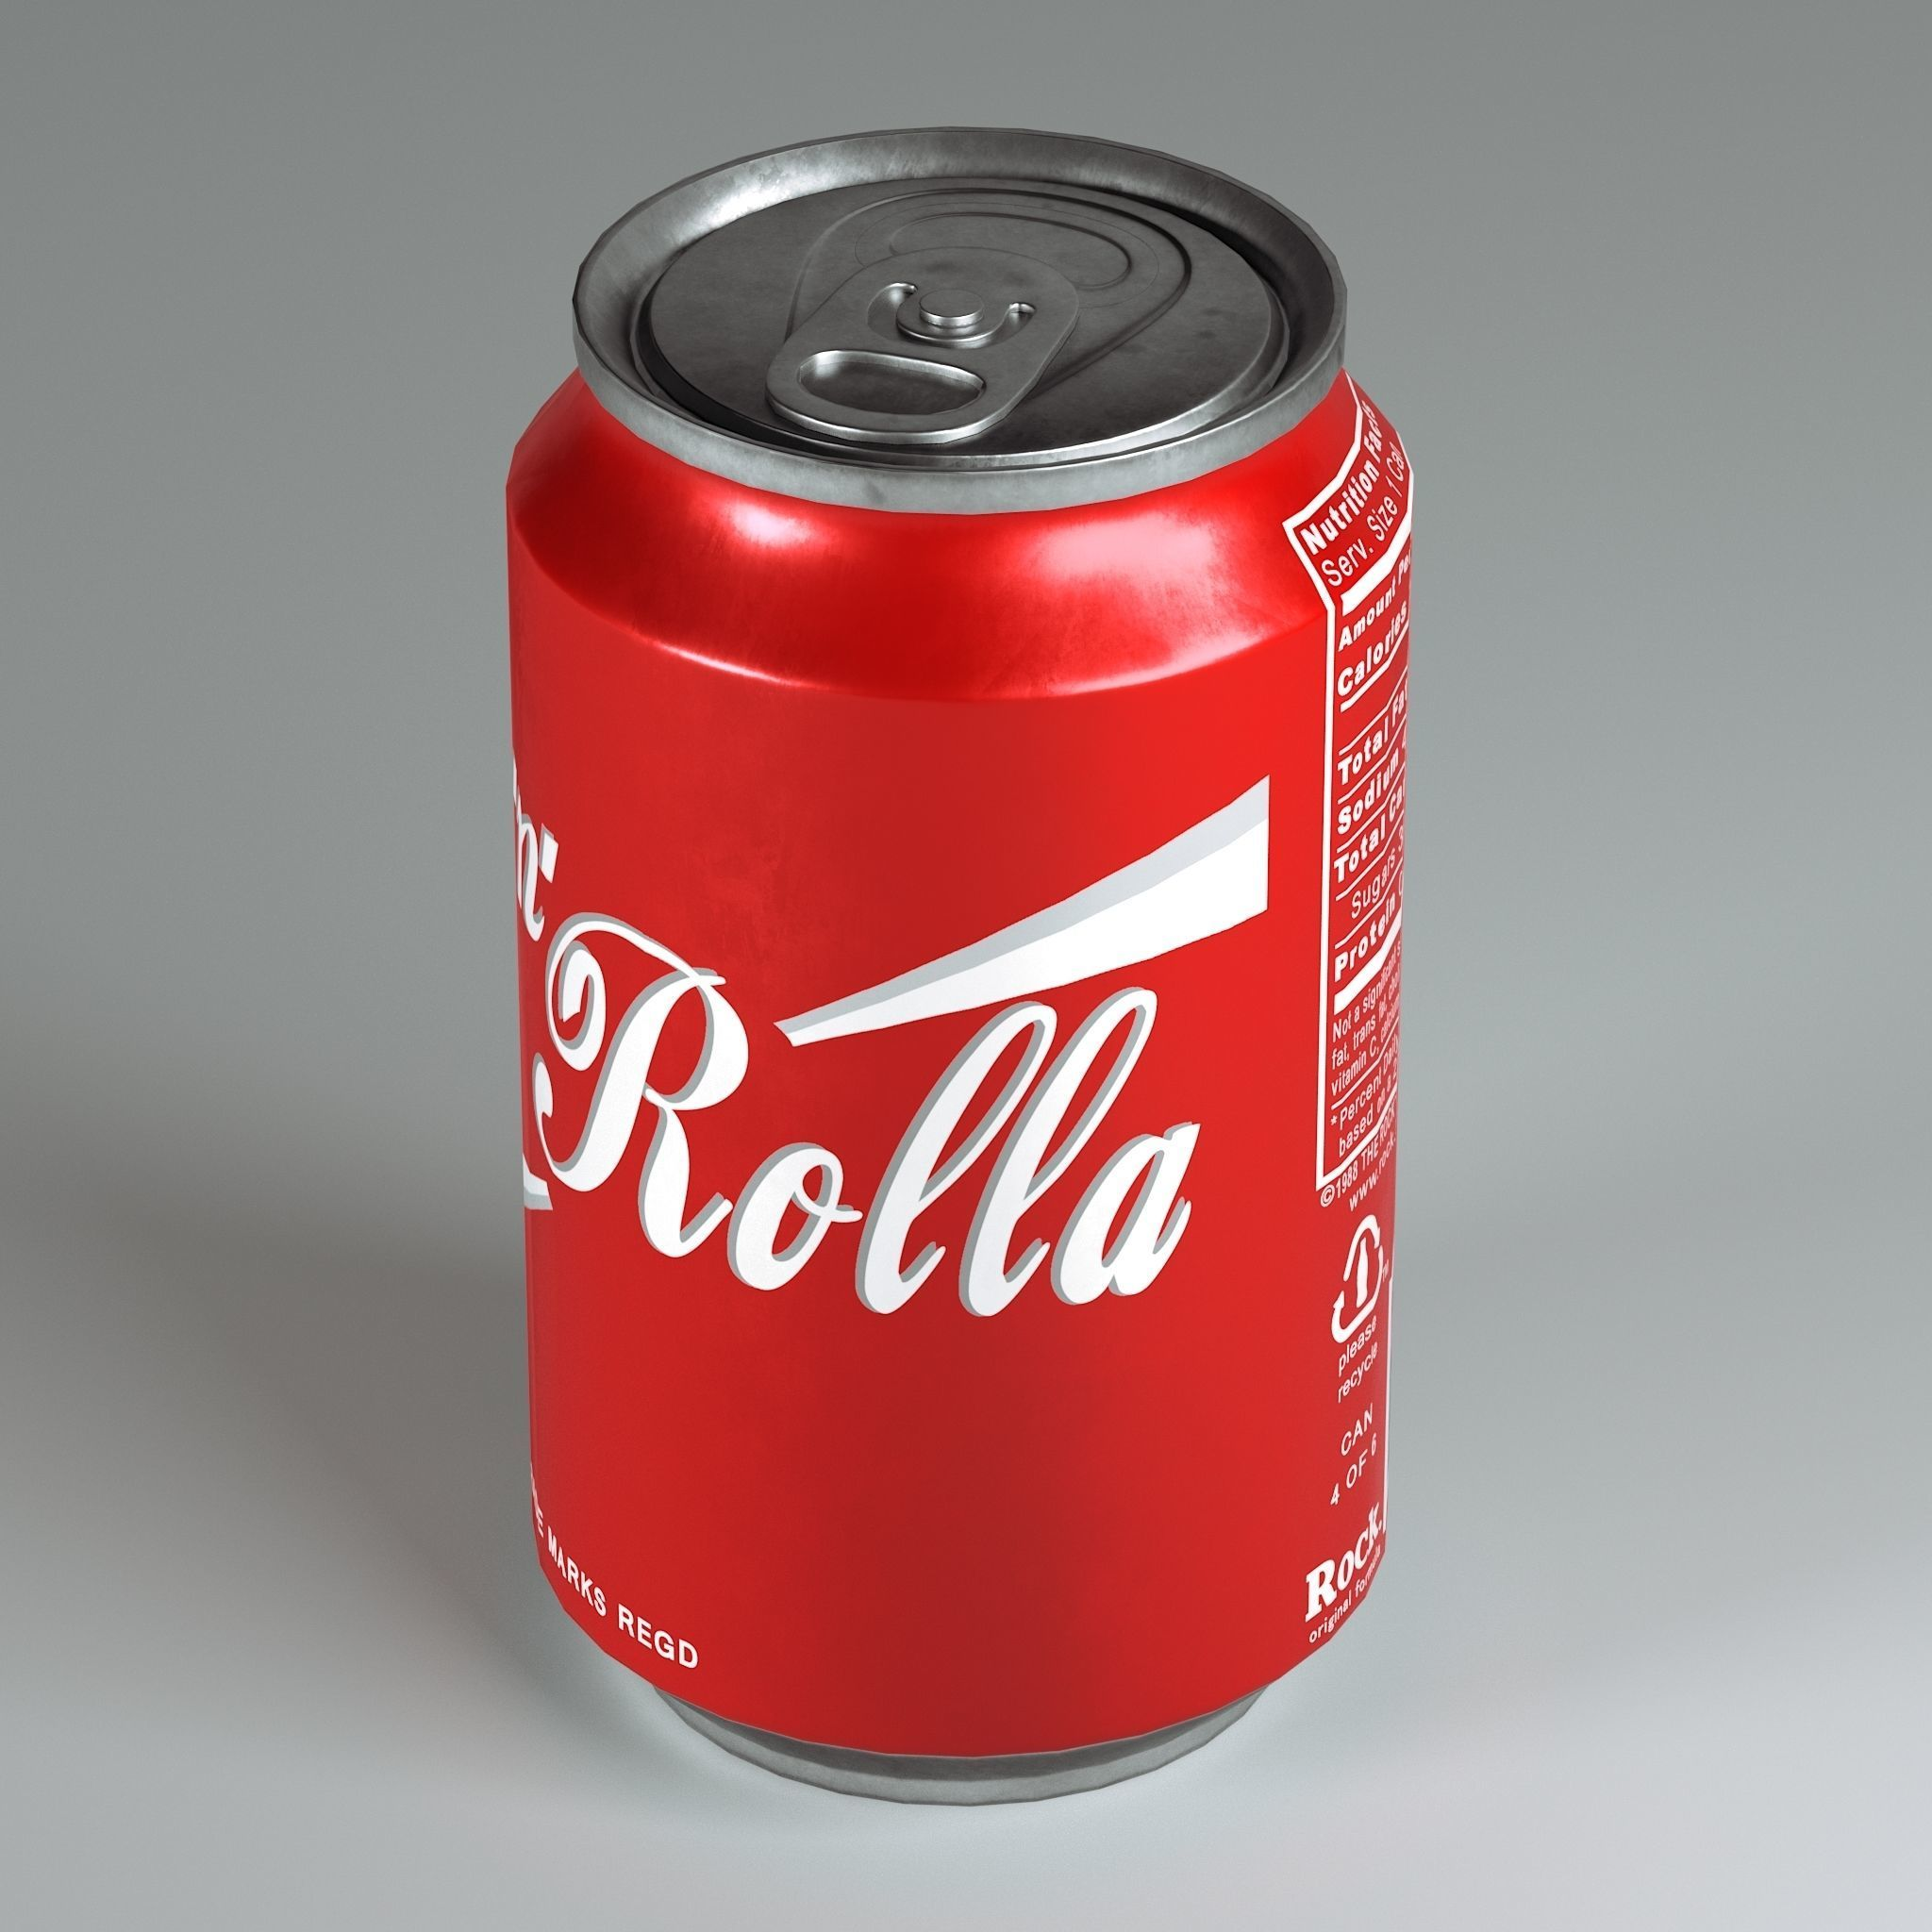 Soda Can VR AR low-poly 3D model